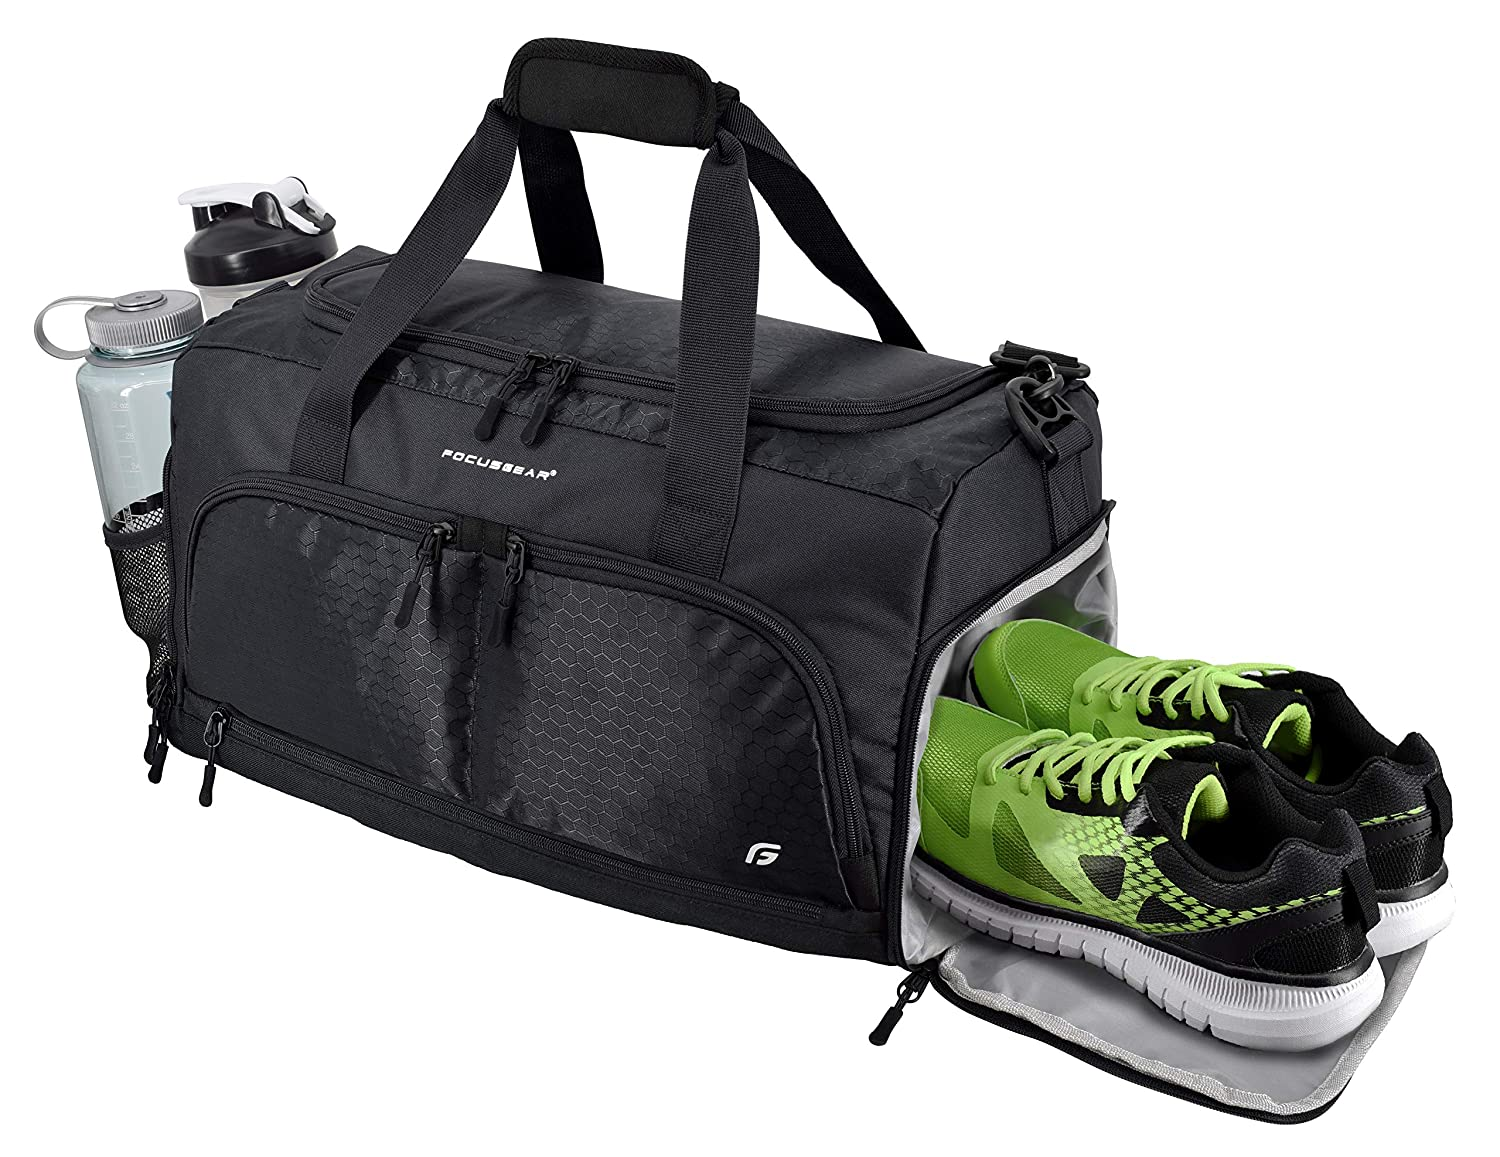 Ultimate Gym Bag 2.0 The Durable Crowdsource Designed Duffel Bag with 10 Optimal Compartments Including Water Resistant Pouch Black, Medium 20